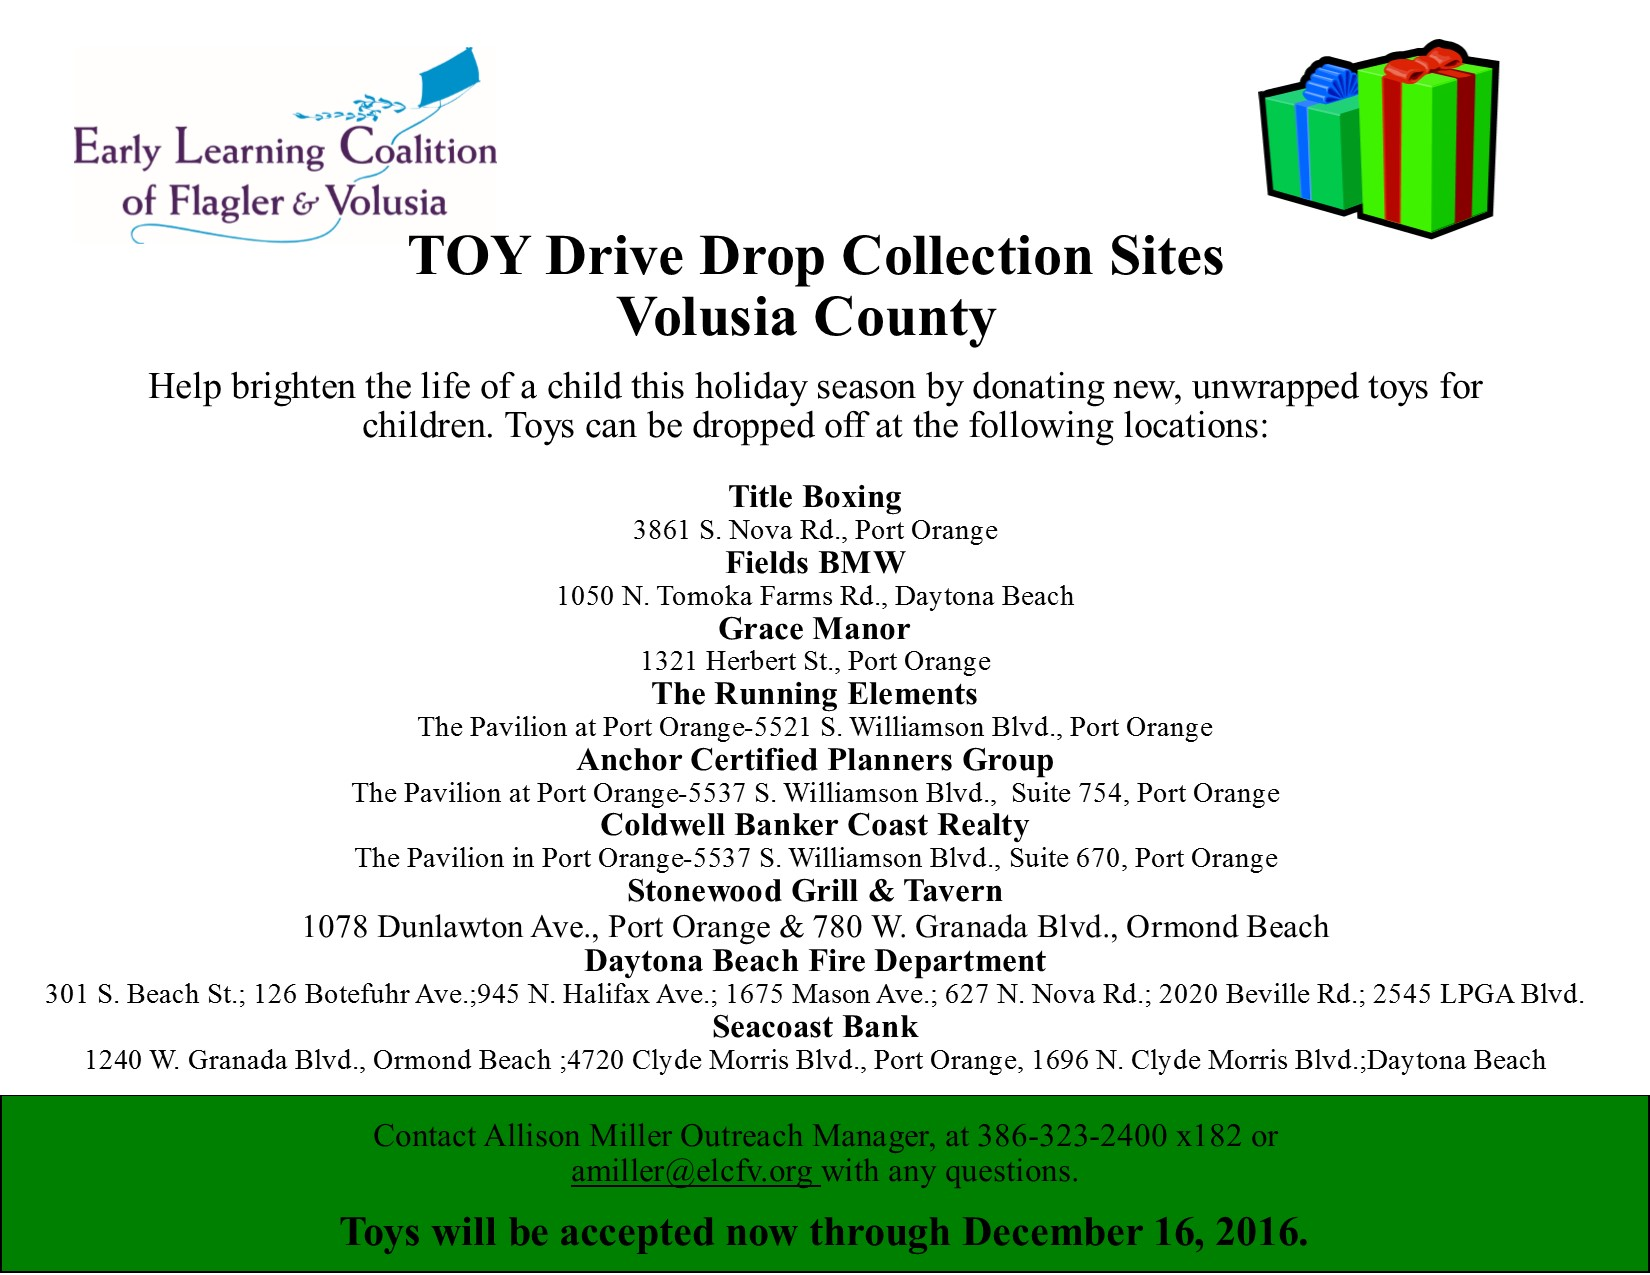 2016 Toy Drive Collection Sites Volusia.jpg